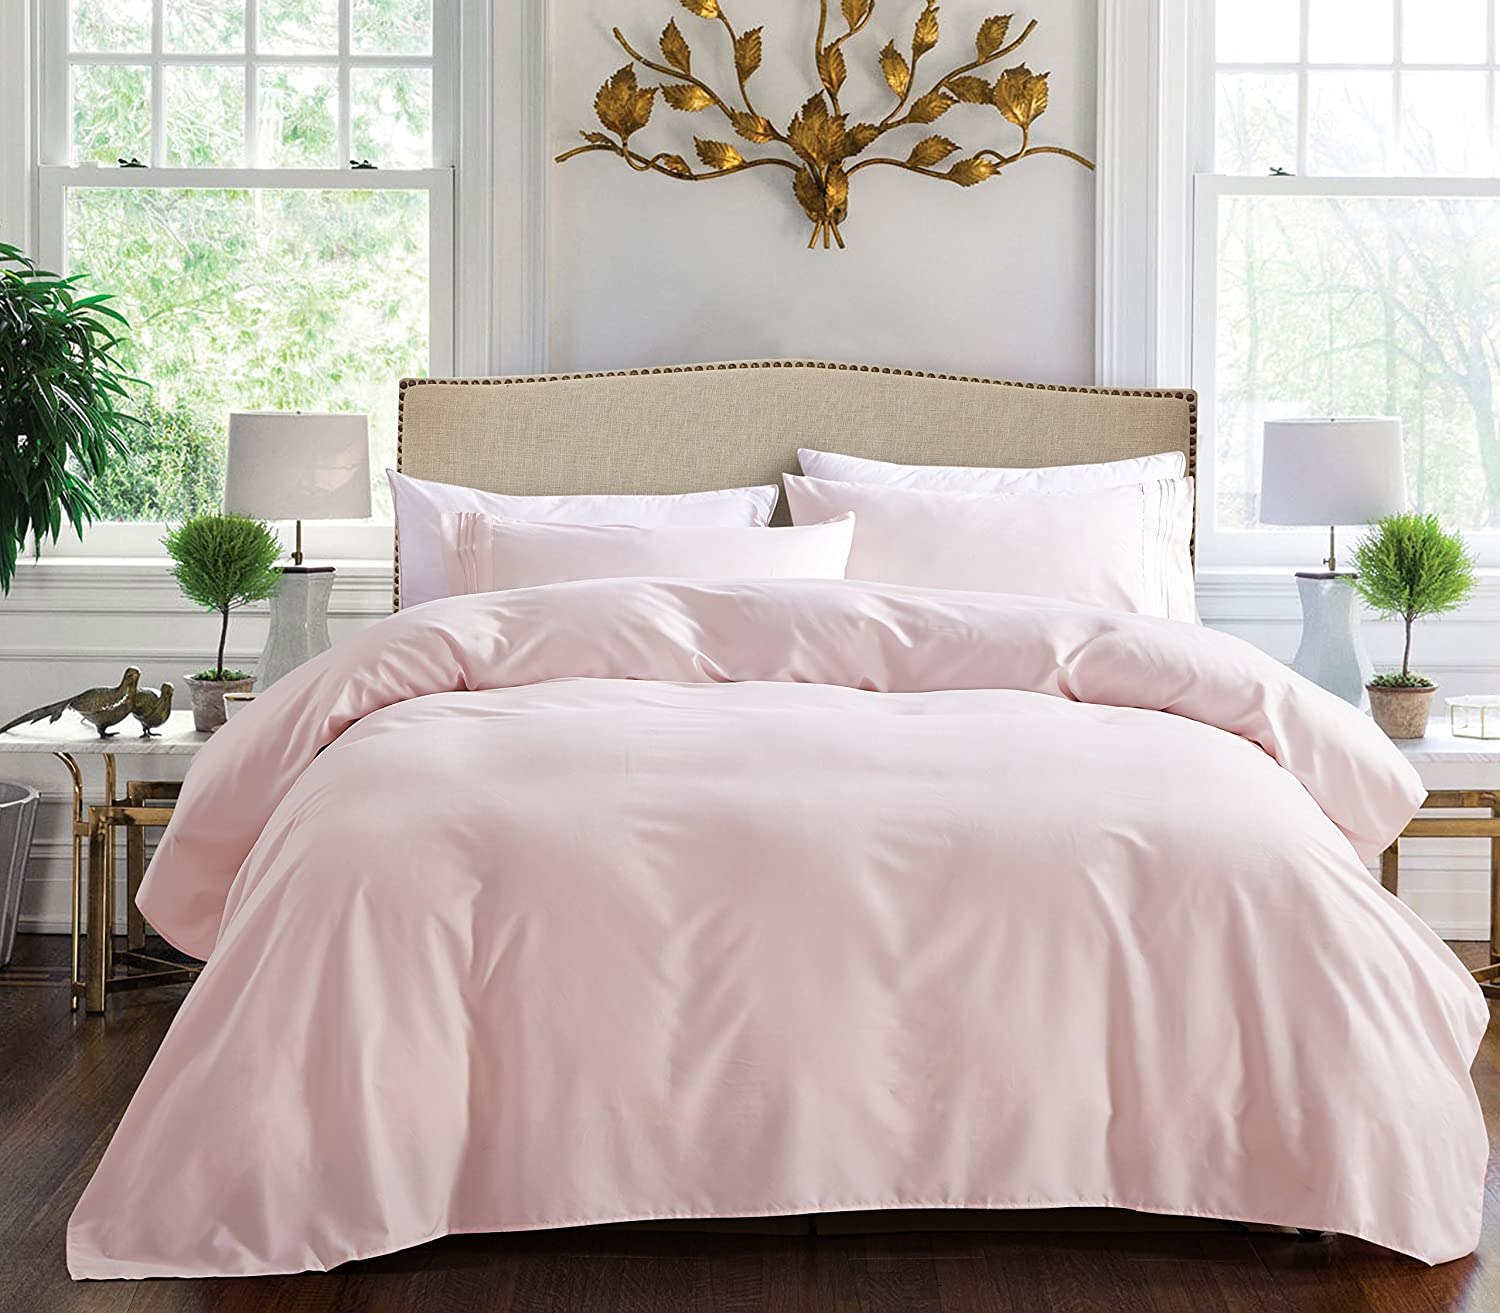 3 Line Microfiber 4 Piece Bed Sheet Set (Full, Rose Pink